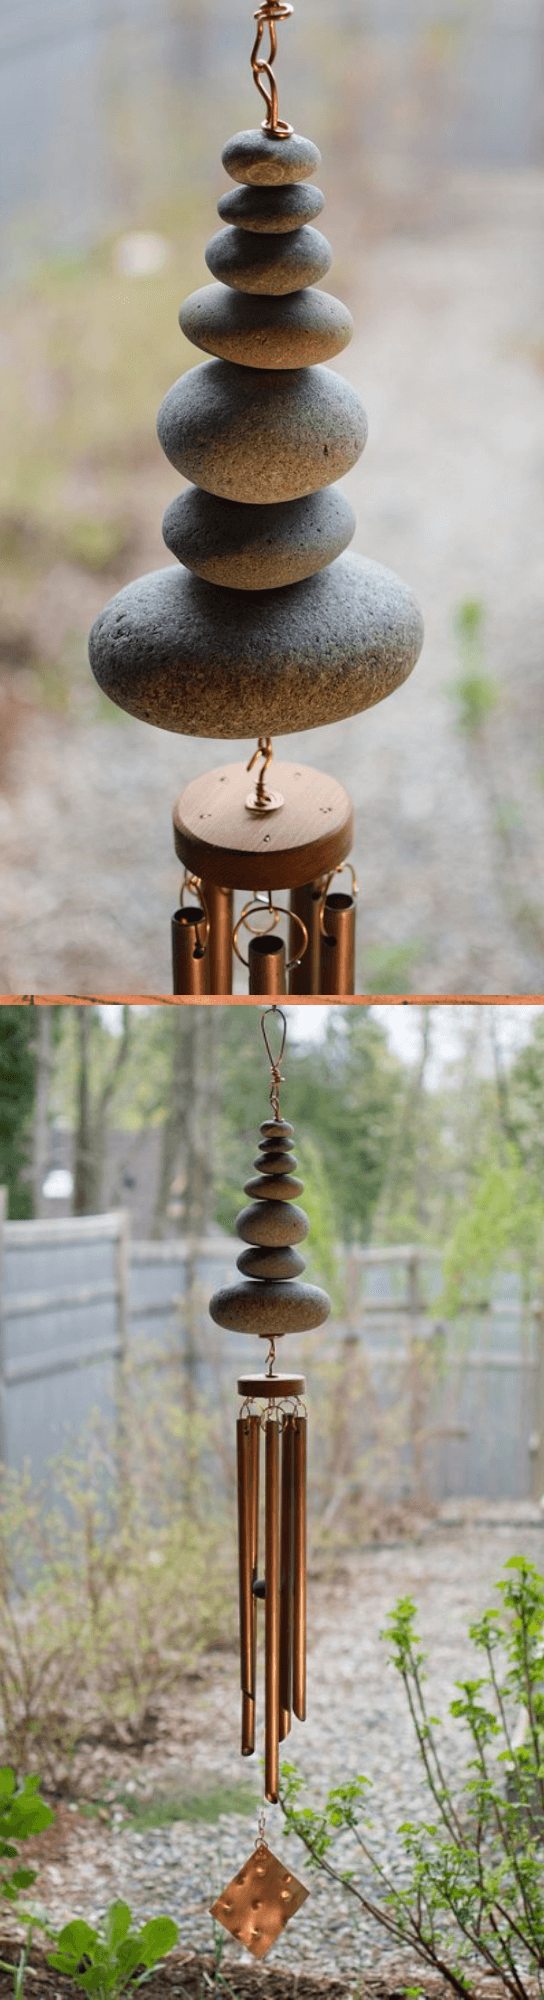 Wind Chime Outdoor Large Copper Beach Stones Handcrafted